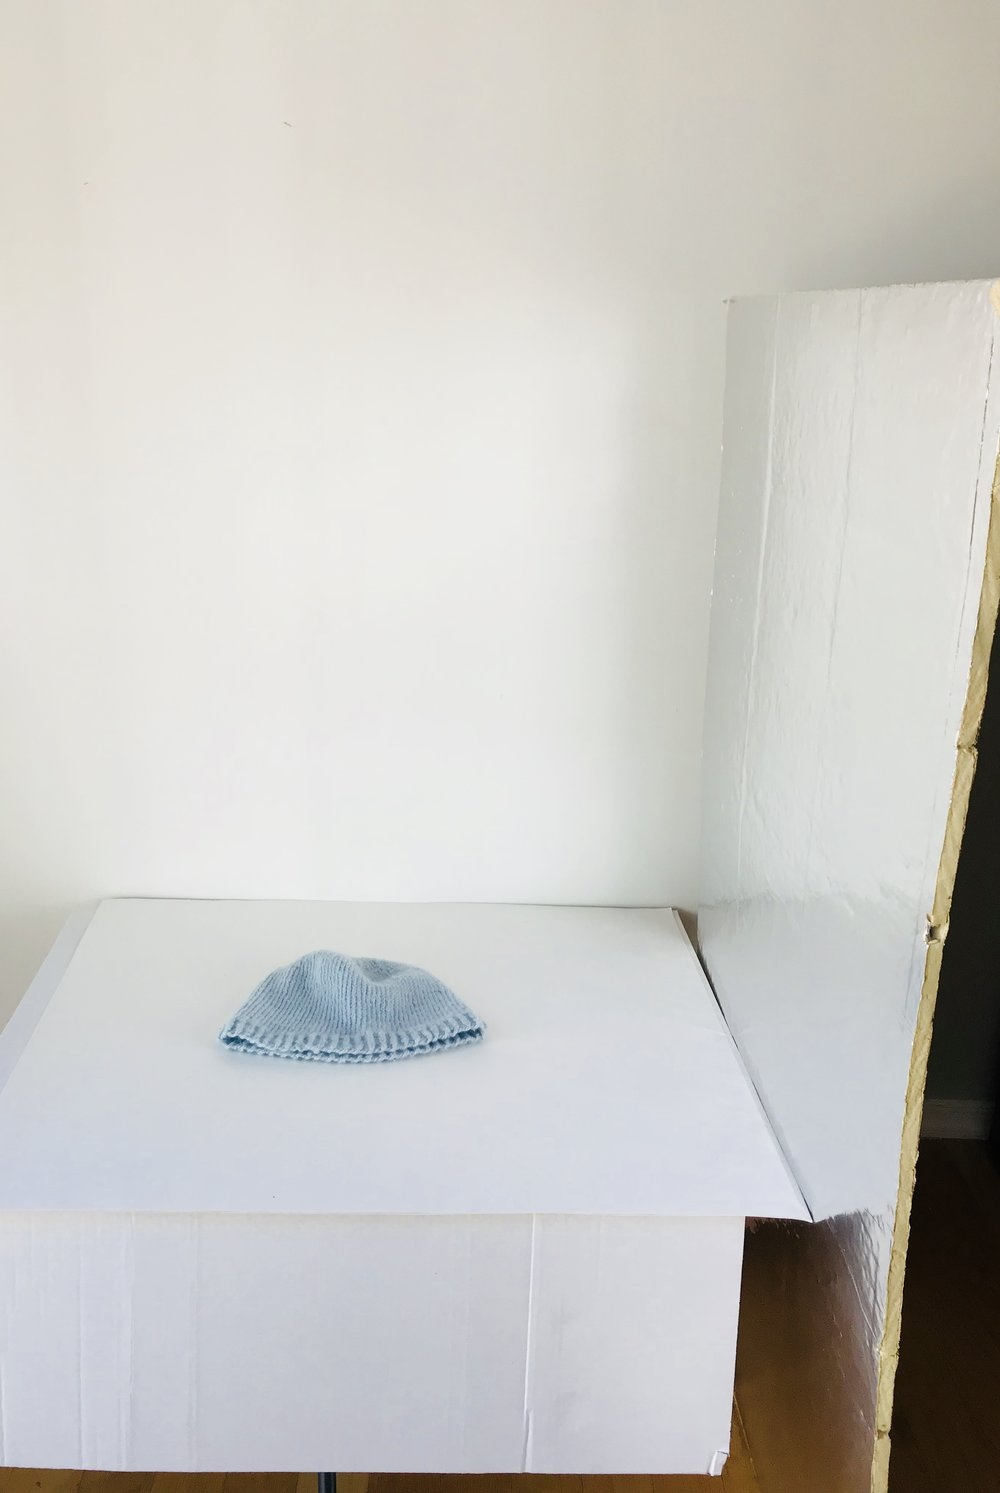 Poster board and polystyrene